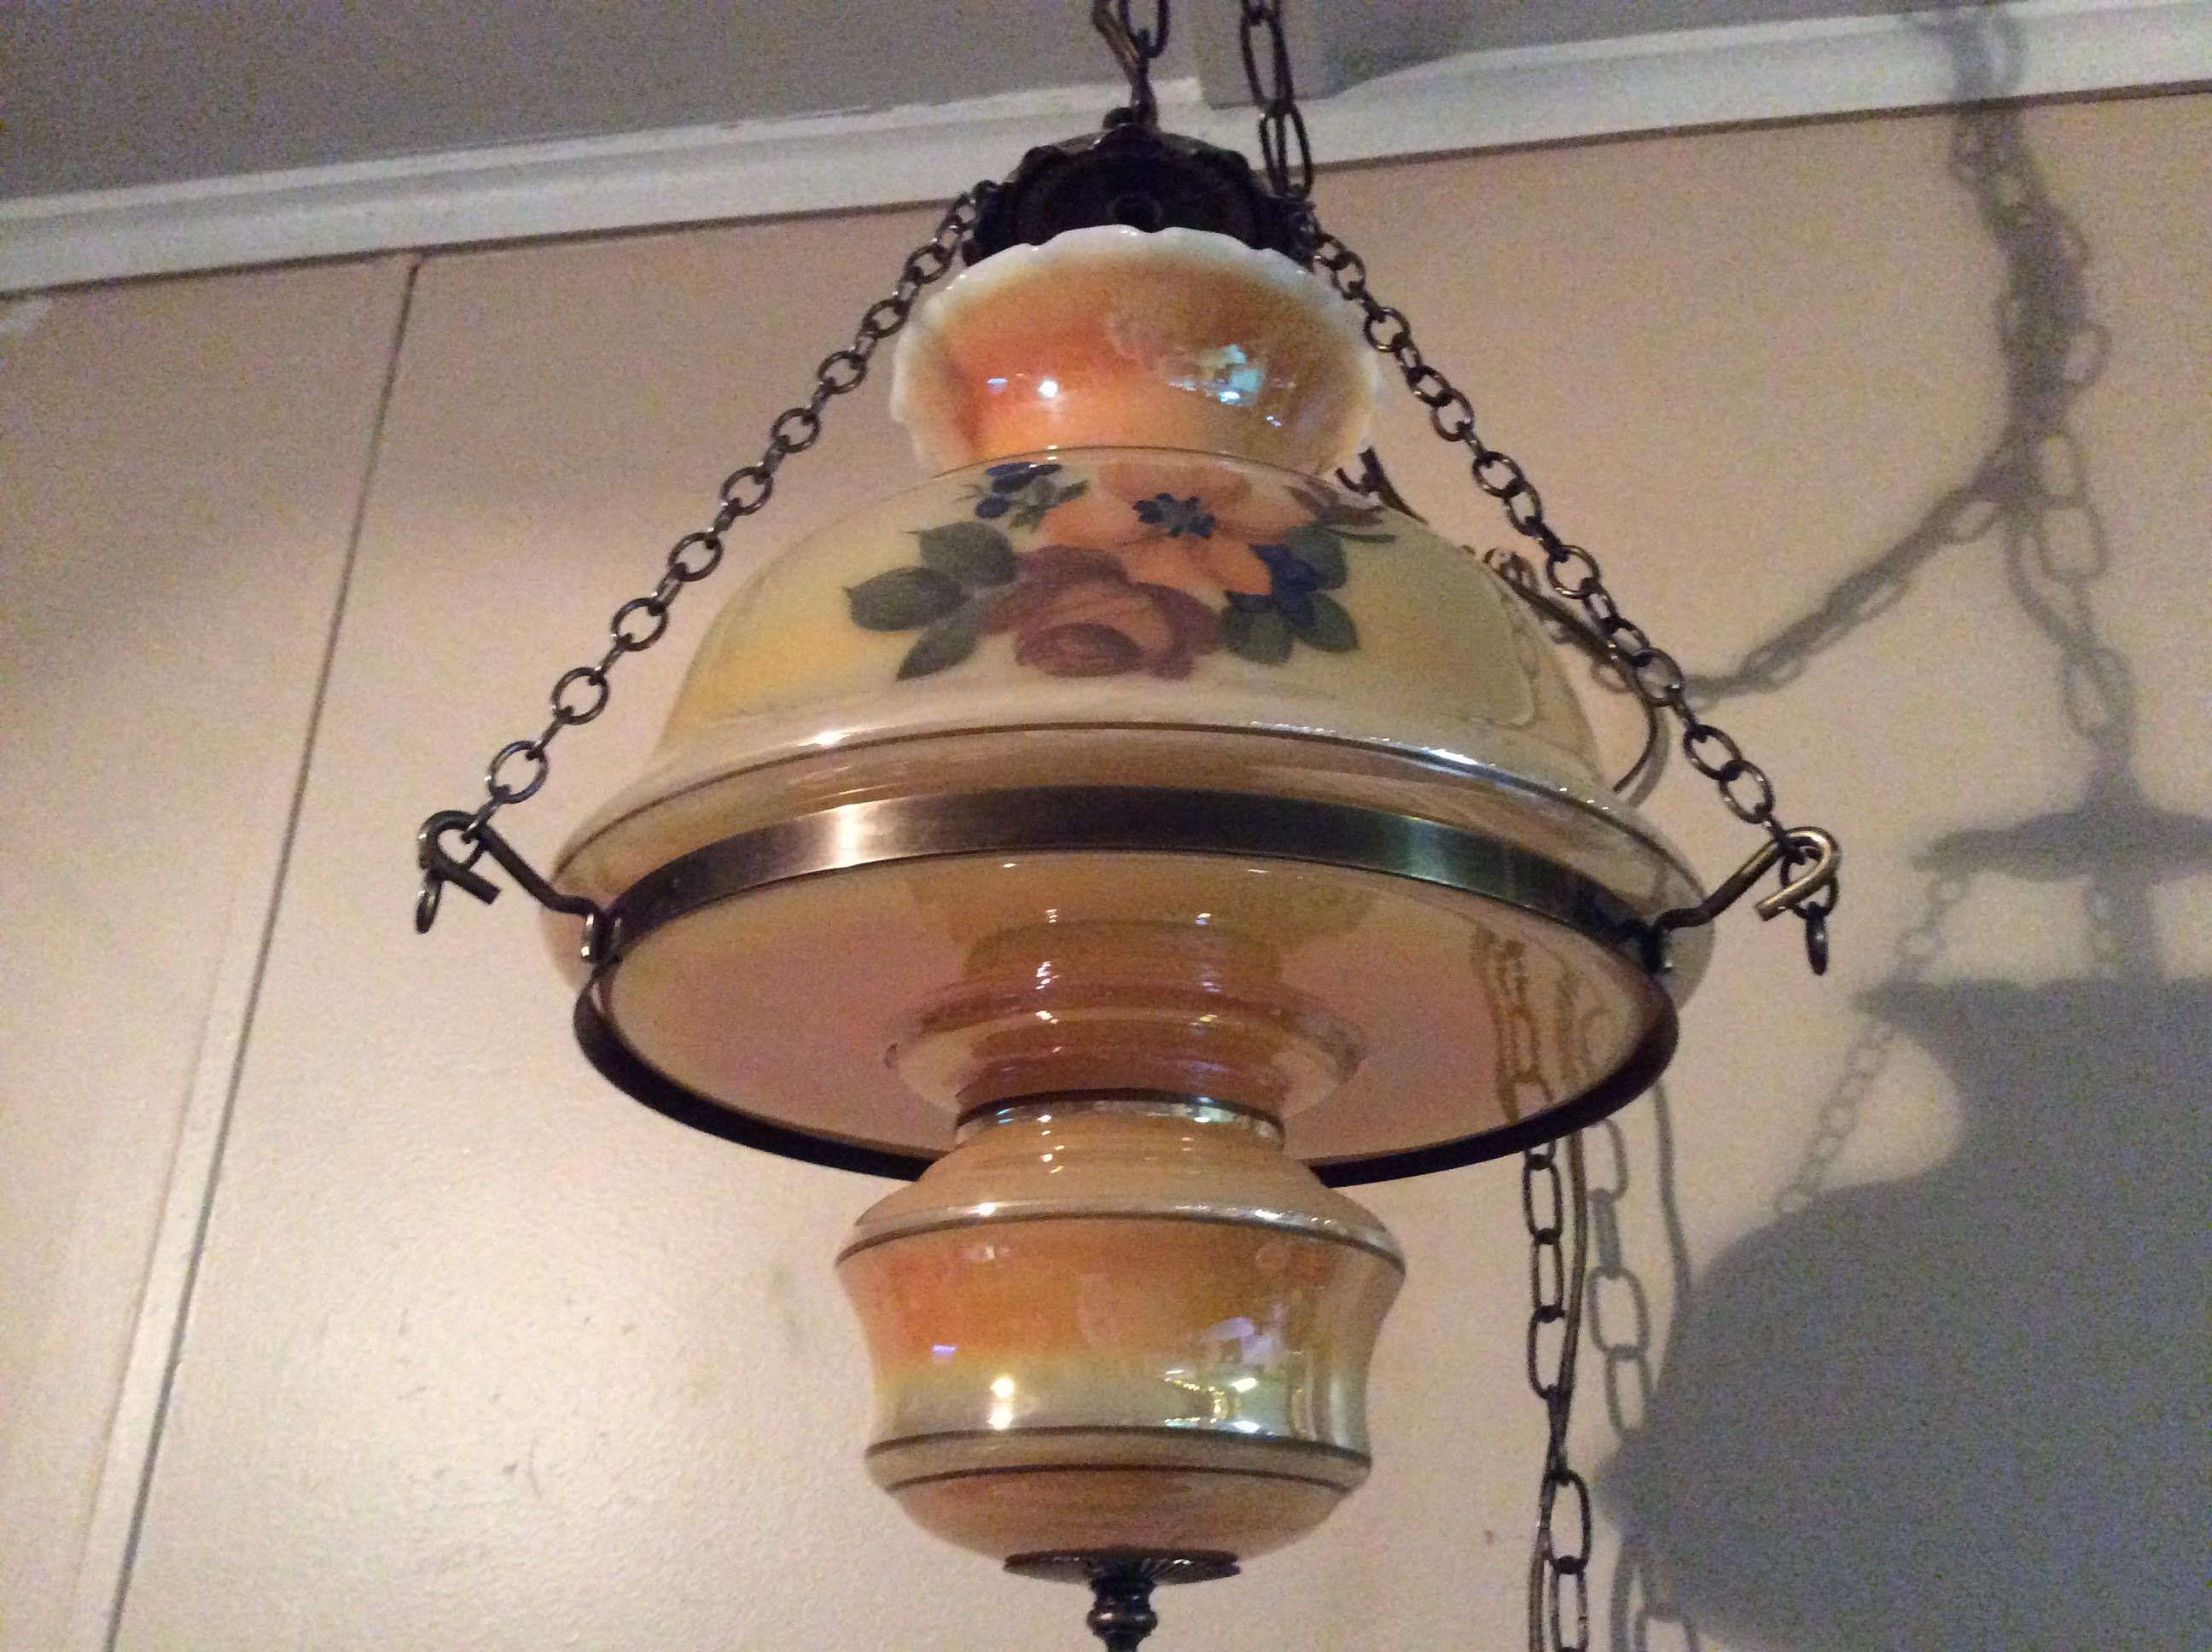 Vintage Gwtw Style Hanging Swag Hurricane Lamp 1950s 1960s Hurricane Lamps Antique Lighting Old Lights